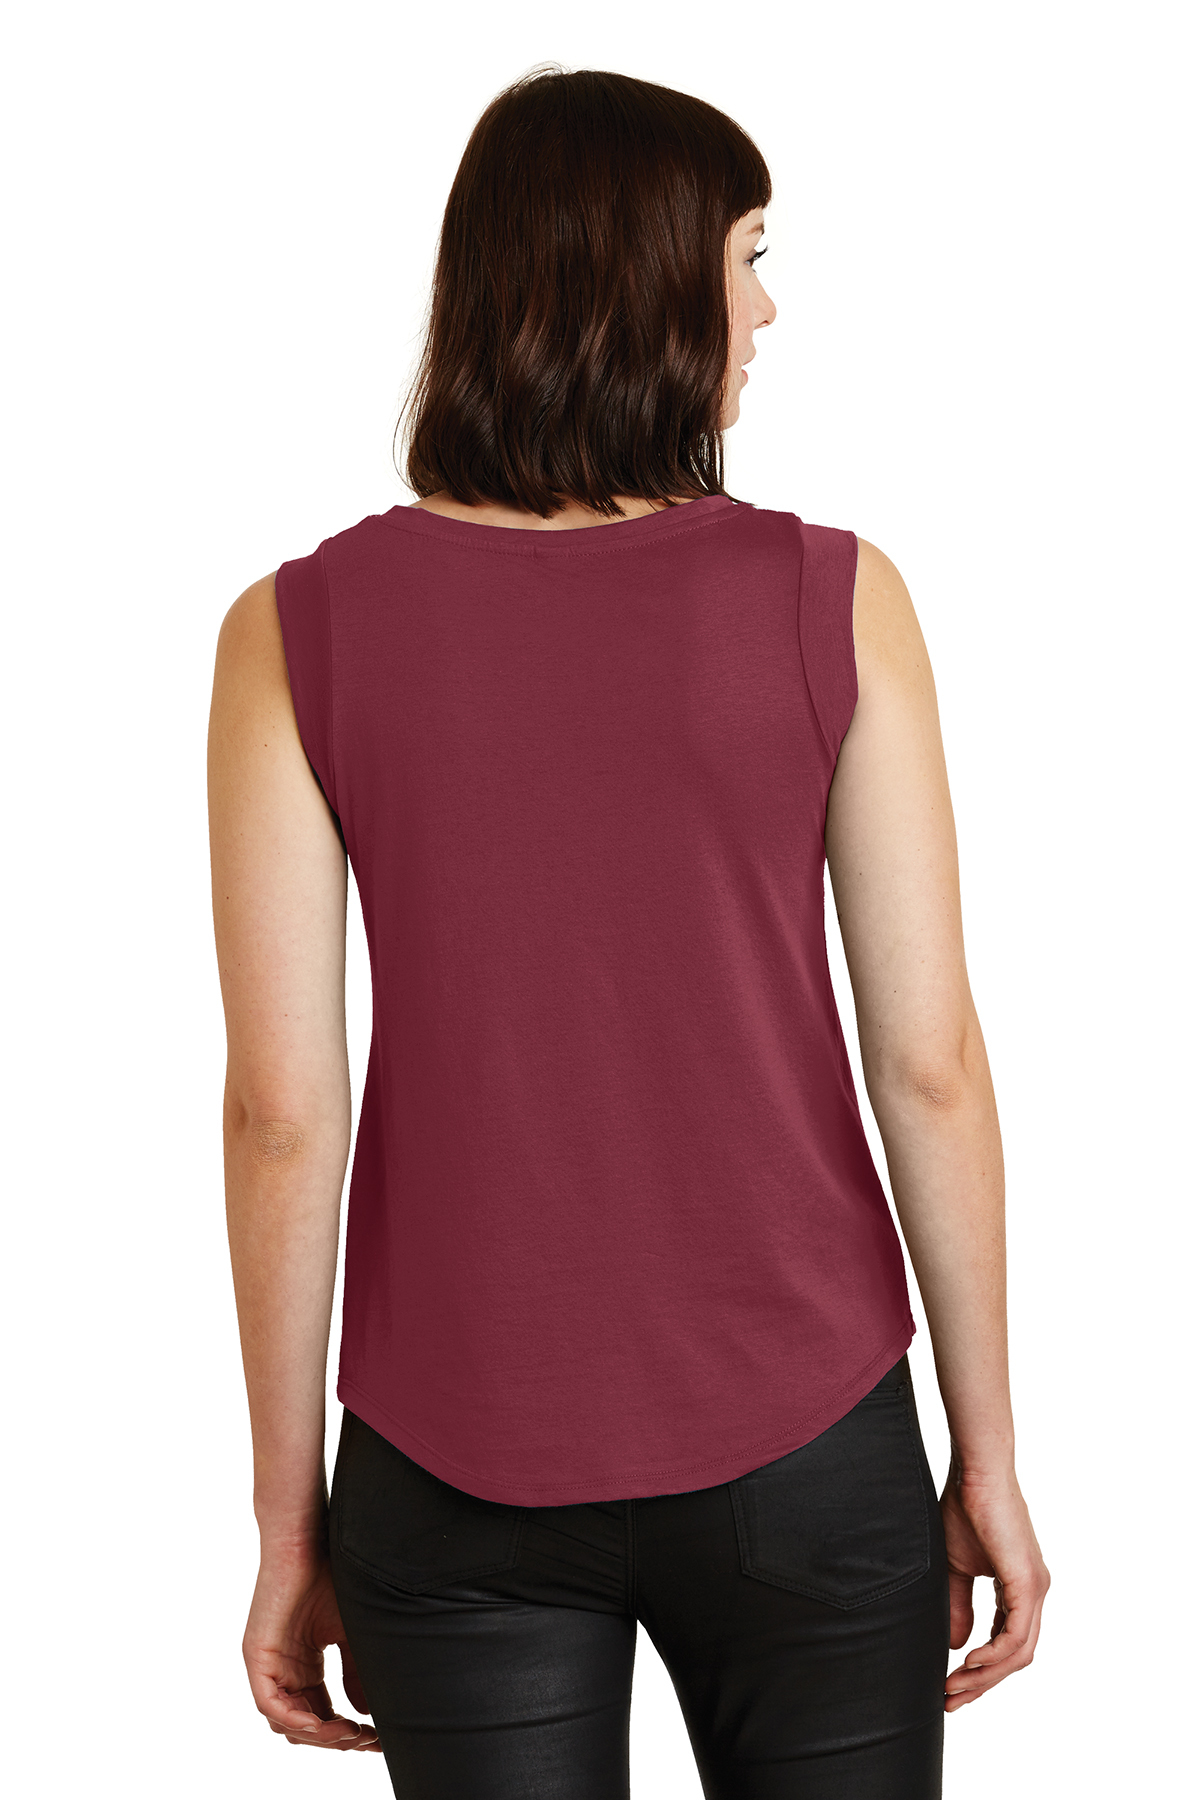 3ec17d29 ... Alternative Women's Cap Sleeve Satin Jersey Crew T-Shirt. A maximum of  8 logos have been uploaded. Please remove a logo from My Logos to continue